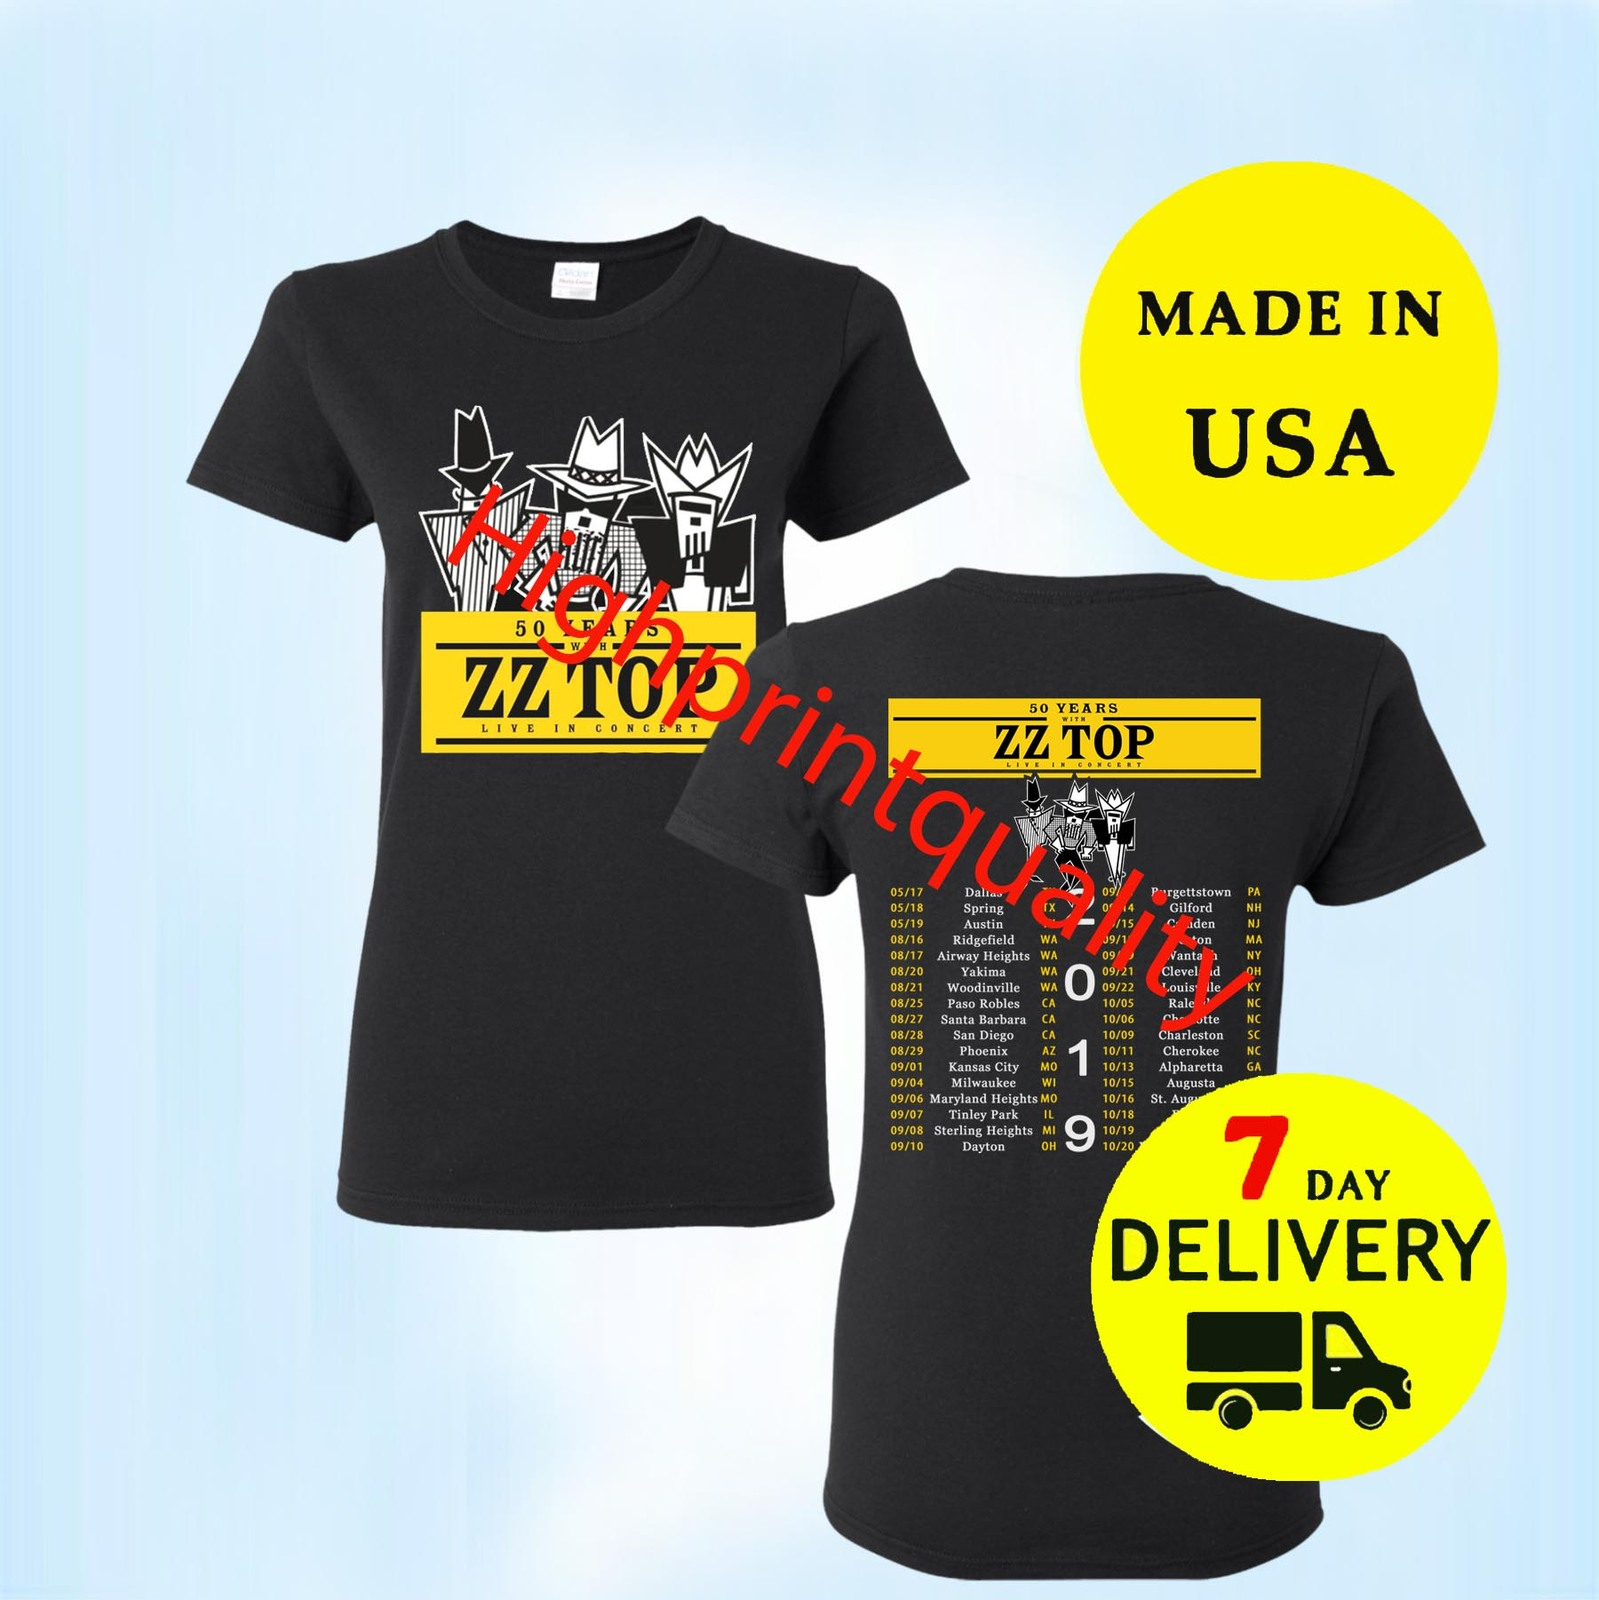 ZZ Top Shirt 50th Anniversary Tour 2019 T-Shirt Women Black Tee Size S-M-L-3XL T